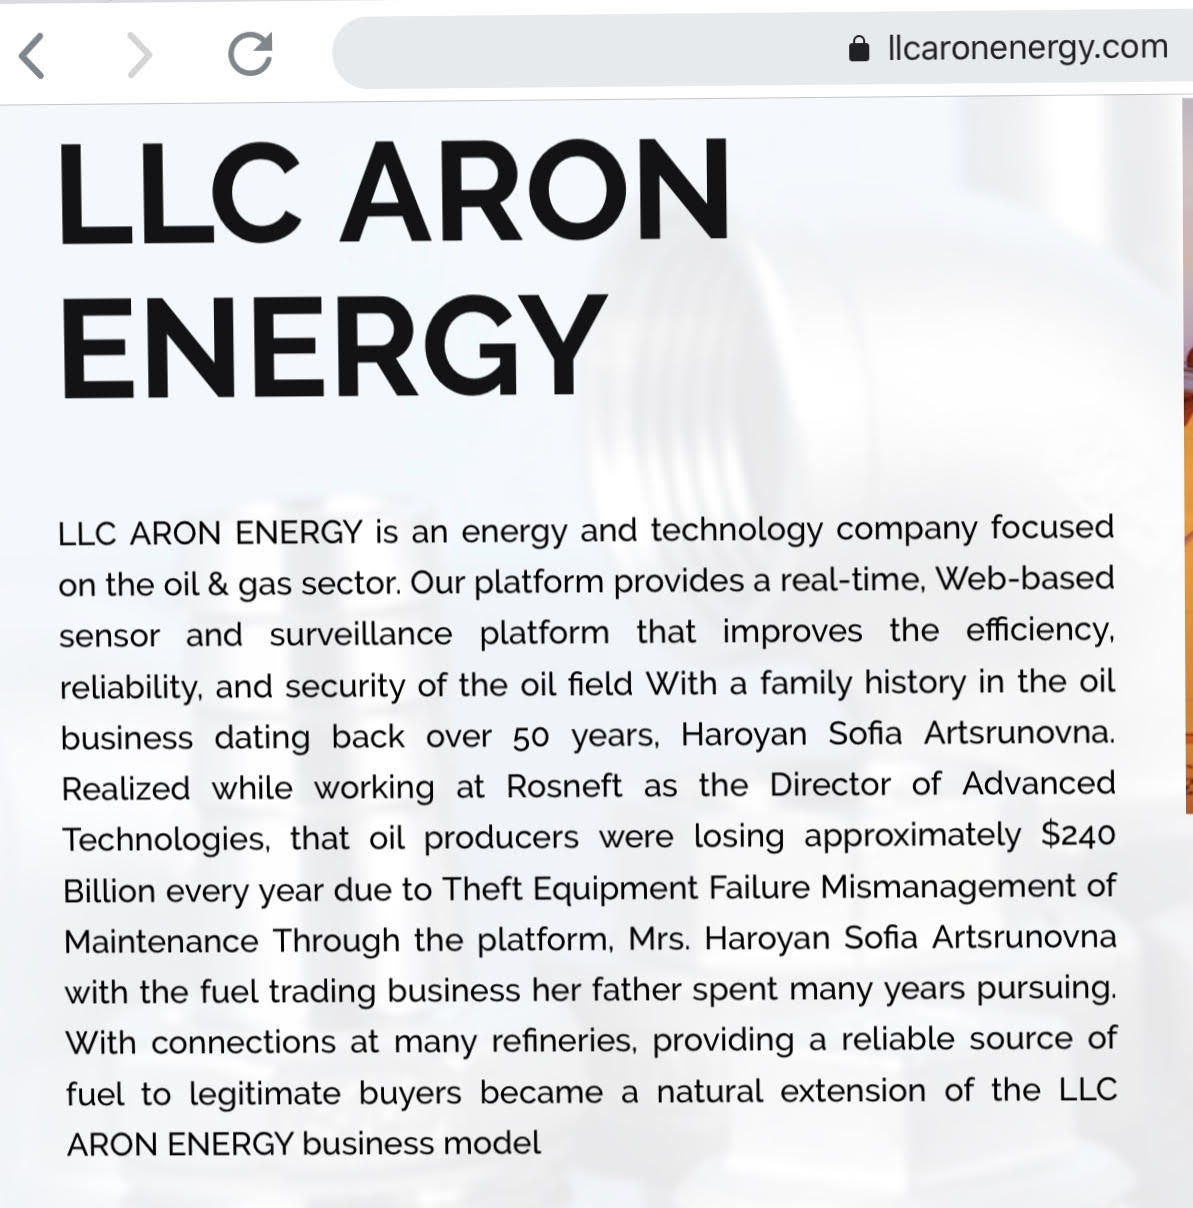 llcaronenergy com (Russian Oil Scam) - Stop 419 Scams and